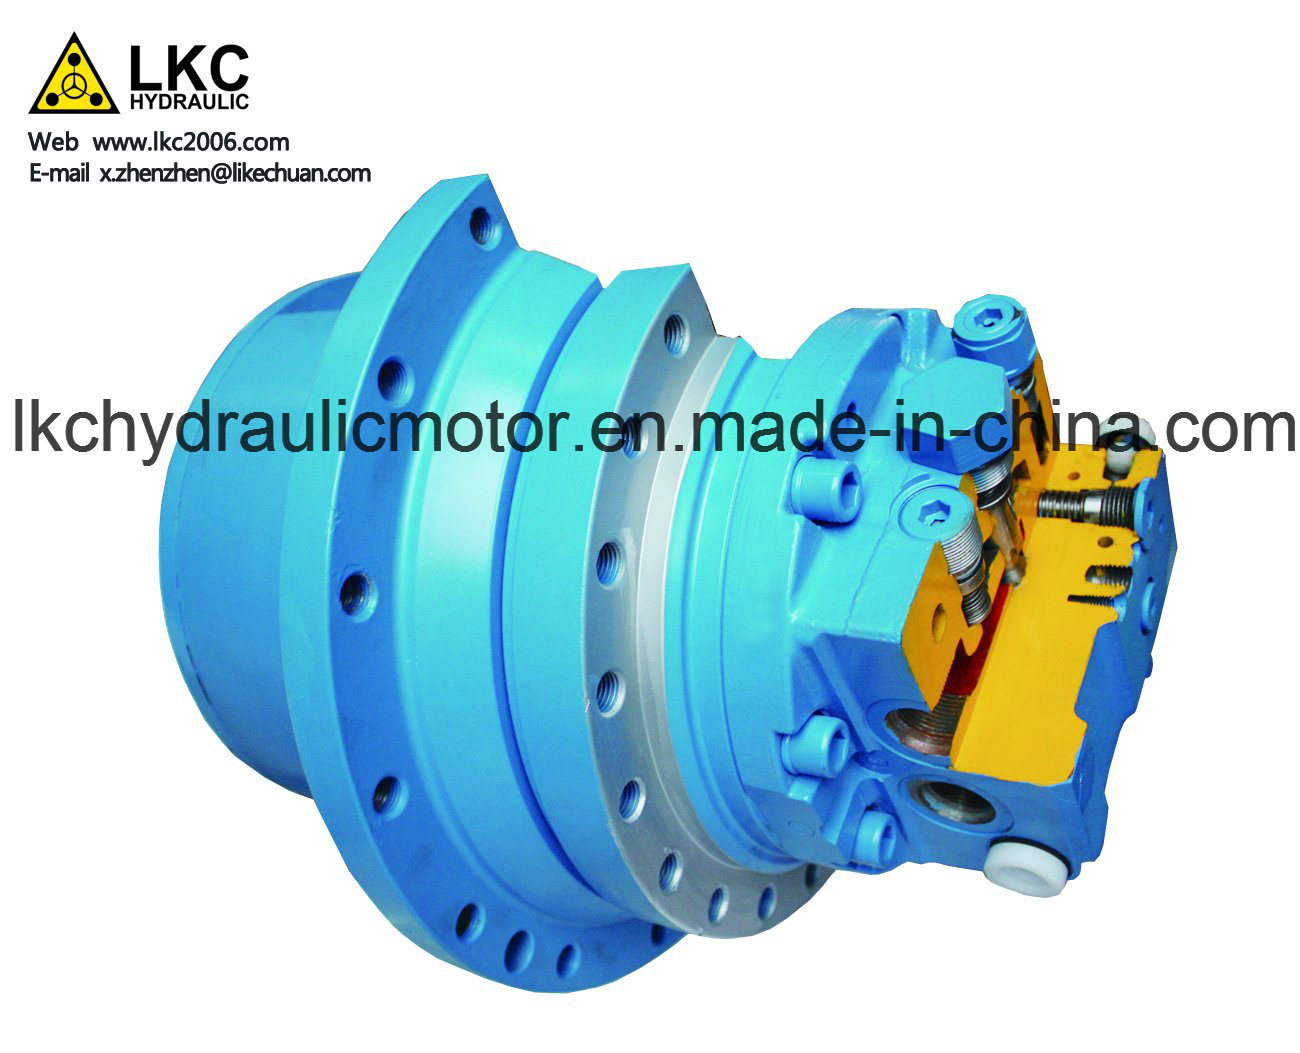 Excavator Spare Parts for Komatsu 4t~5t Crawler Machinery